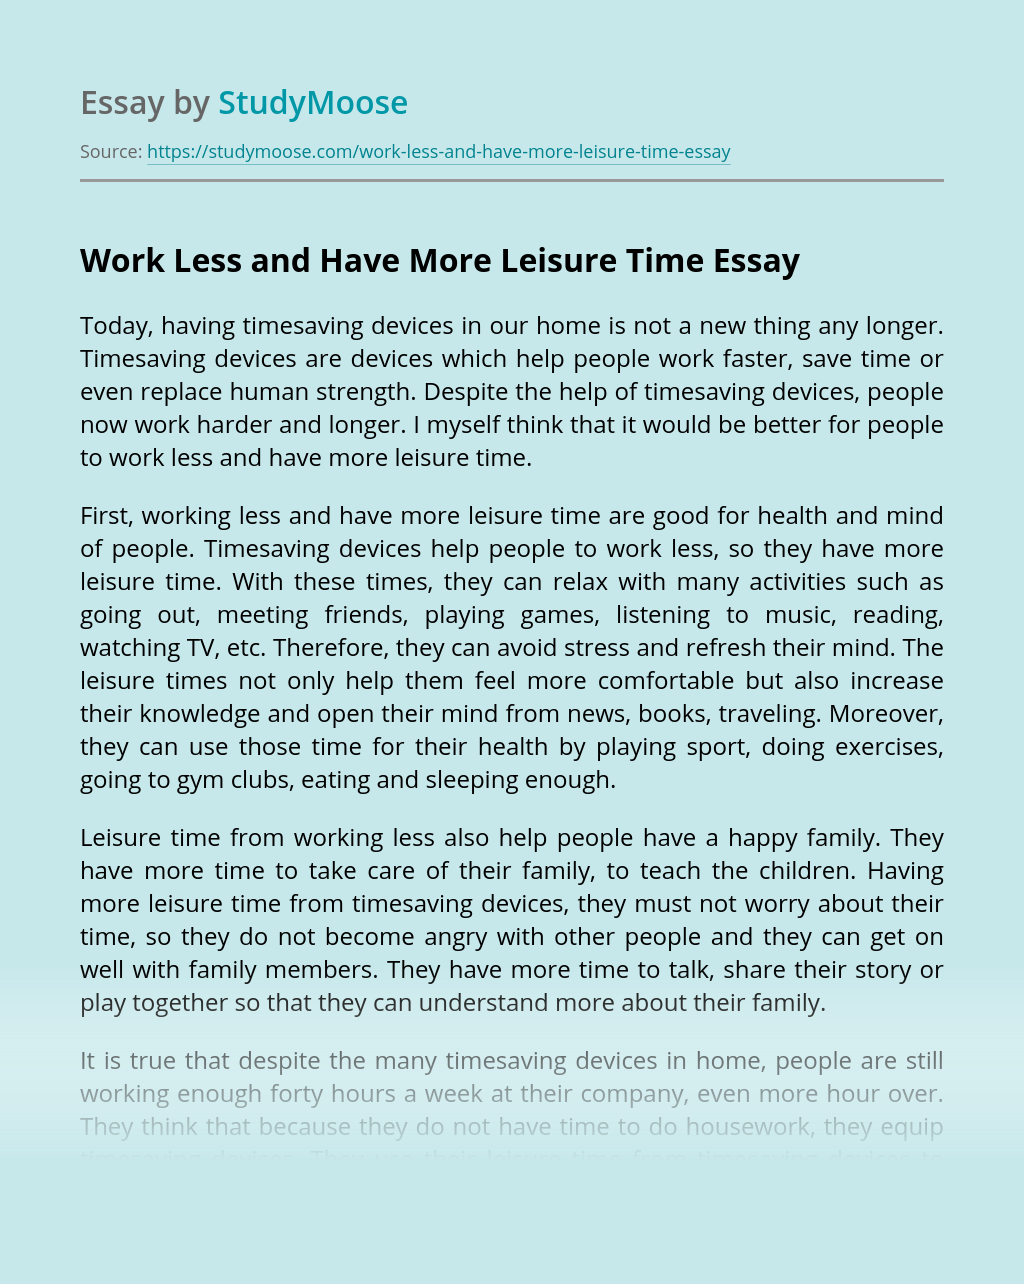 Work Less and Have More Leisure Time